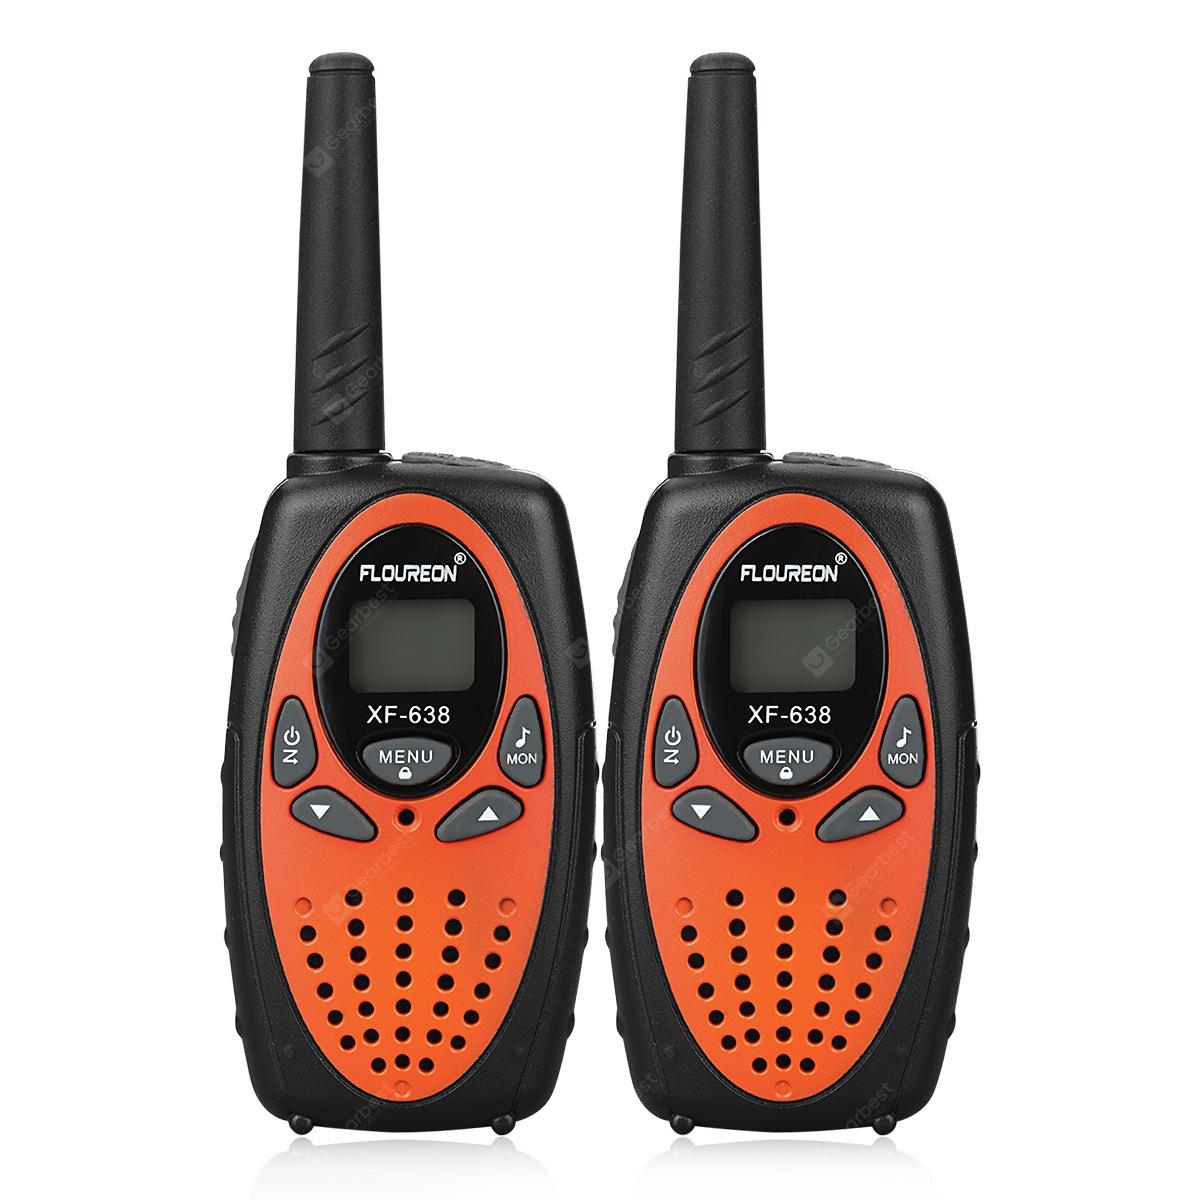 FLOUREON 8 Channel Walkie Talkies UHF400-470MHz Two-Way Radio 3KM Interphone Orange EU/UK - ORANGE